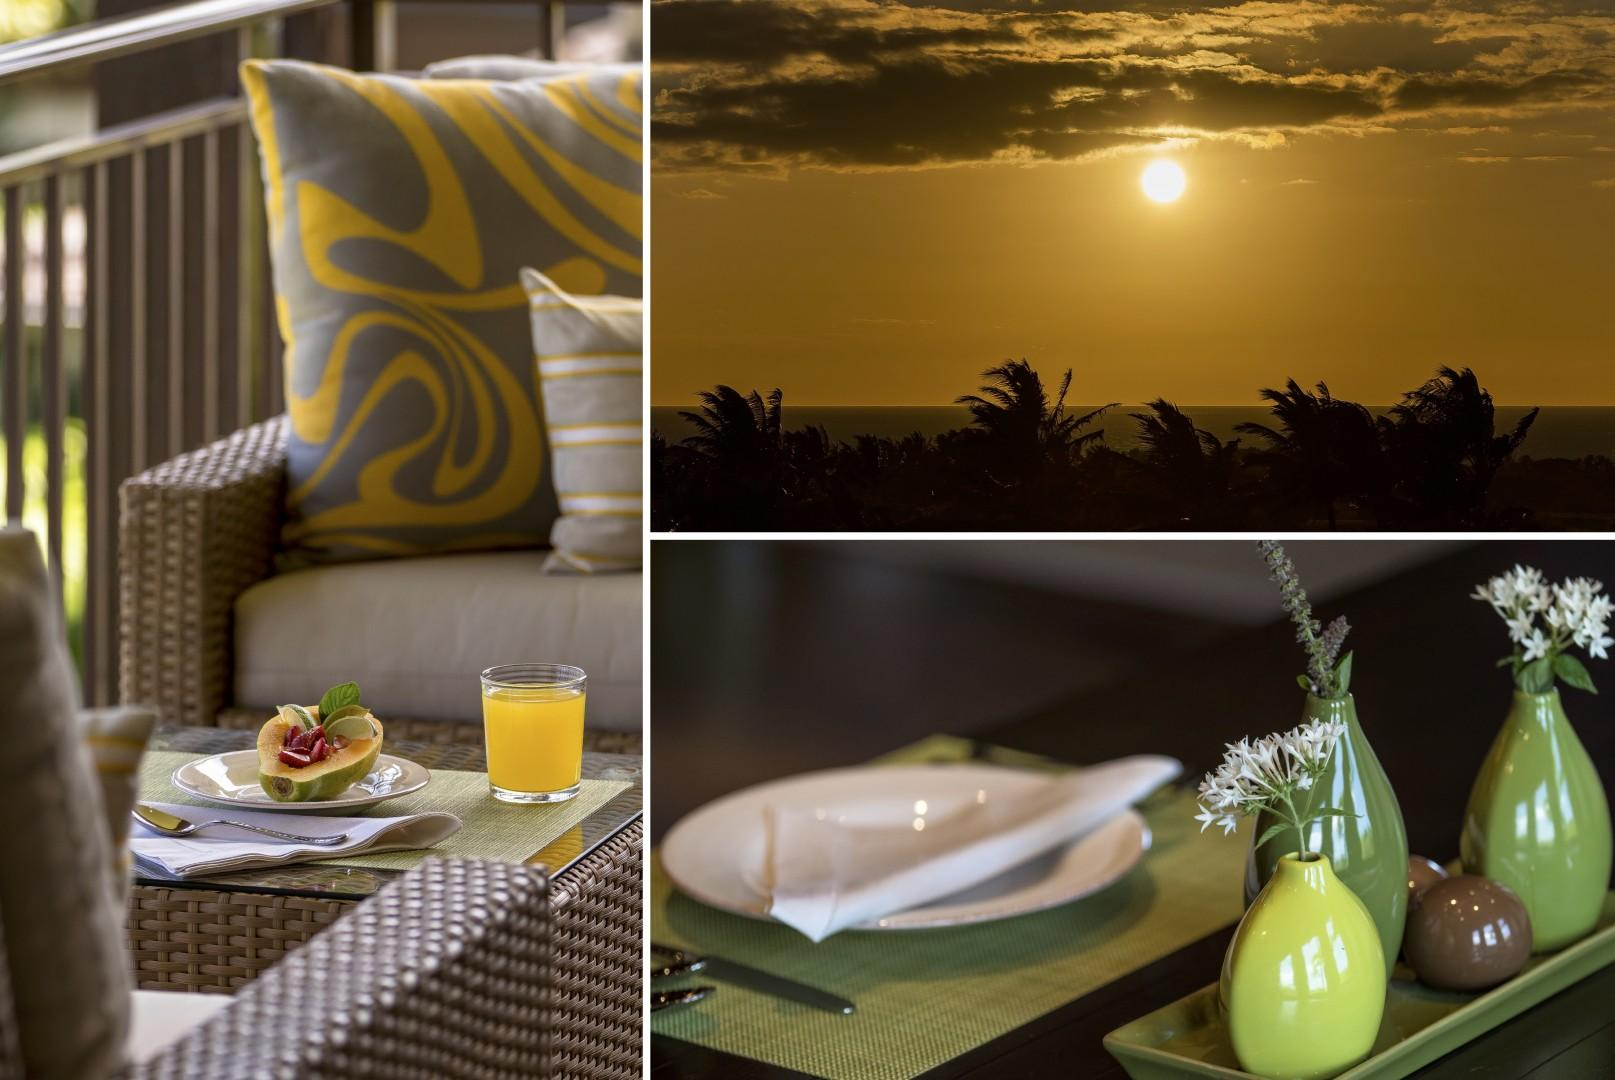 Relax throughout your stay surrounded by luxurious tropical elegance.